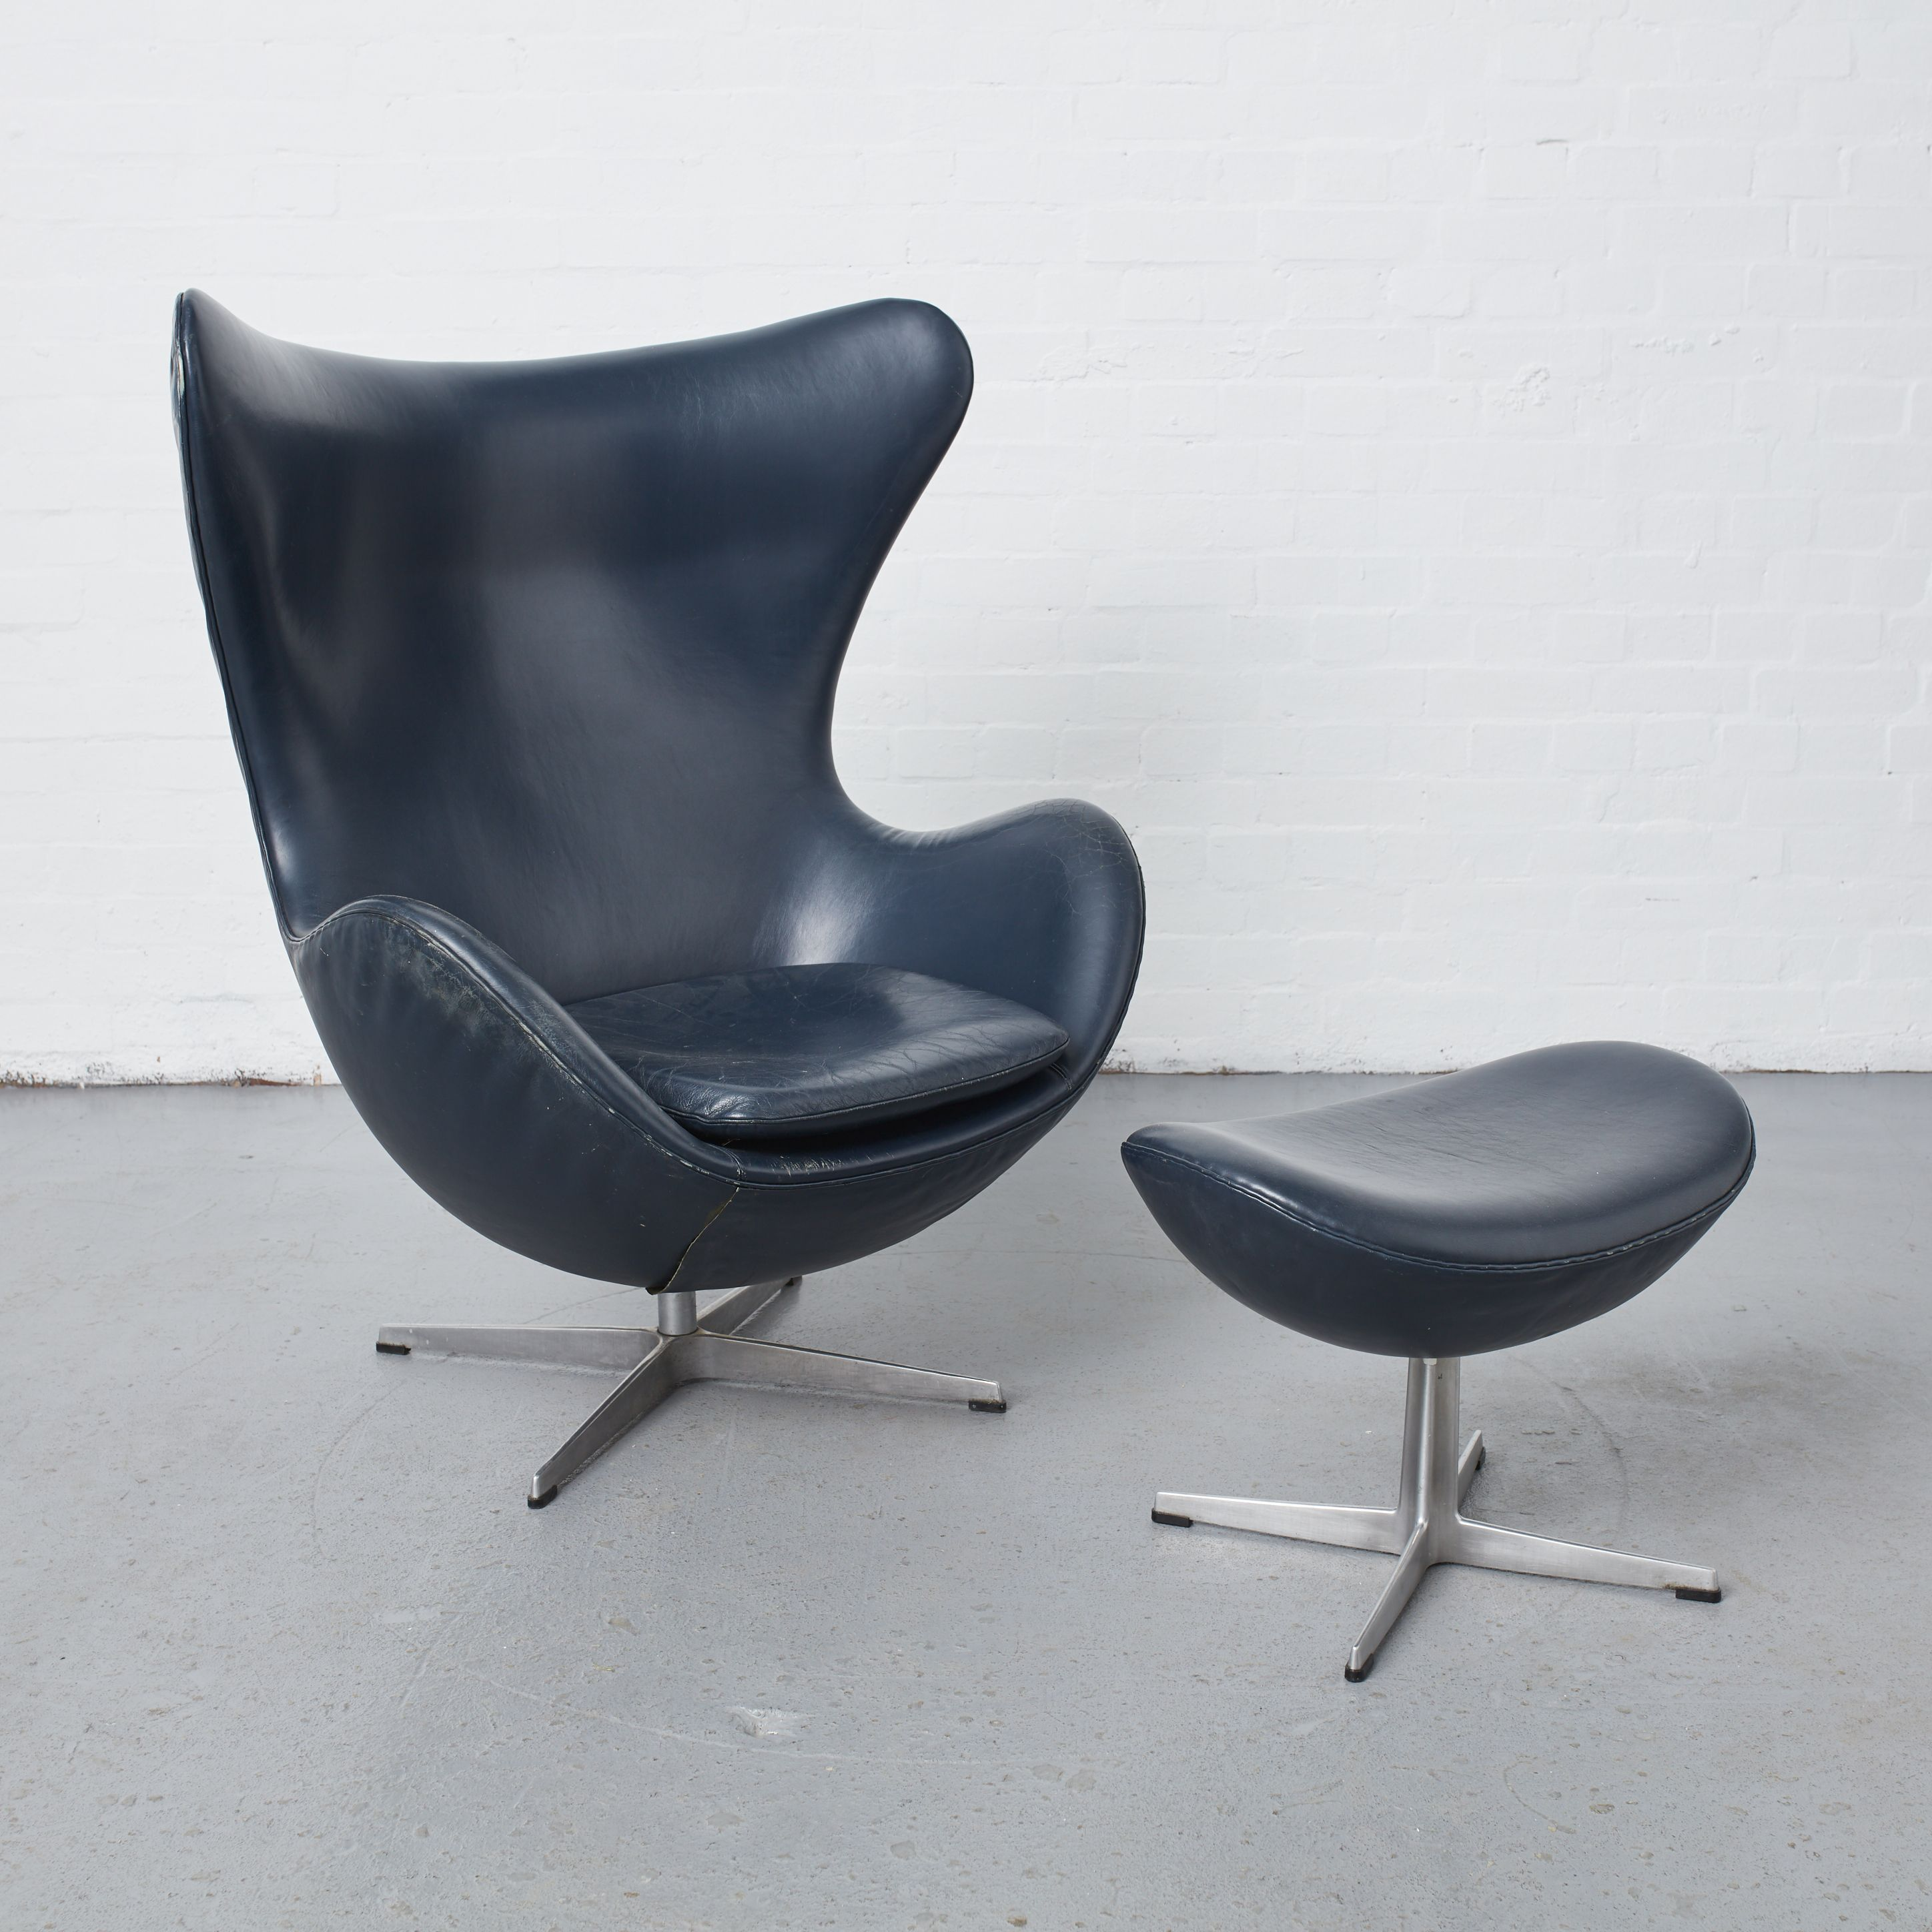 The ultimate statement chair Egg Chair and footstool